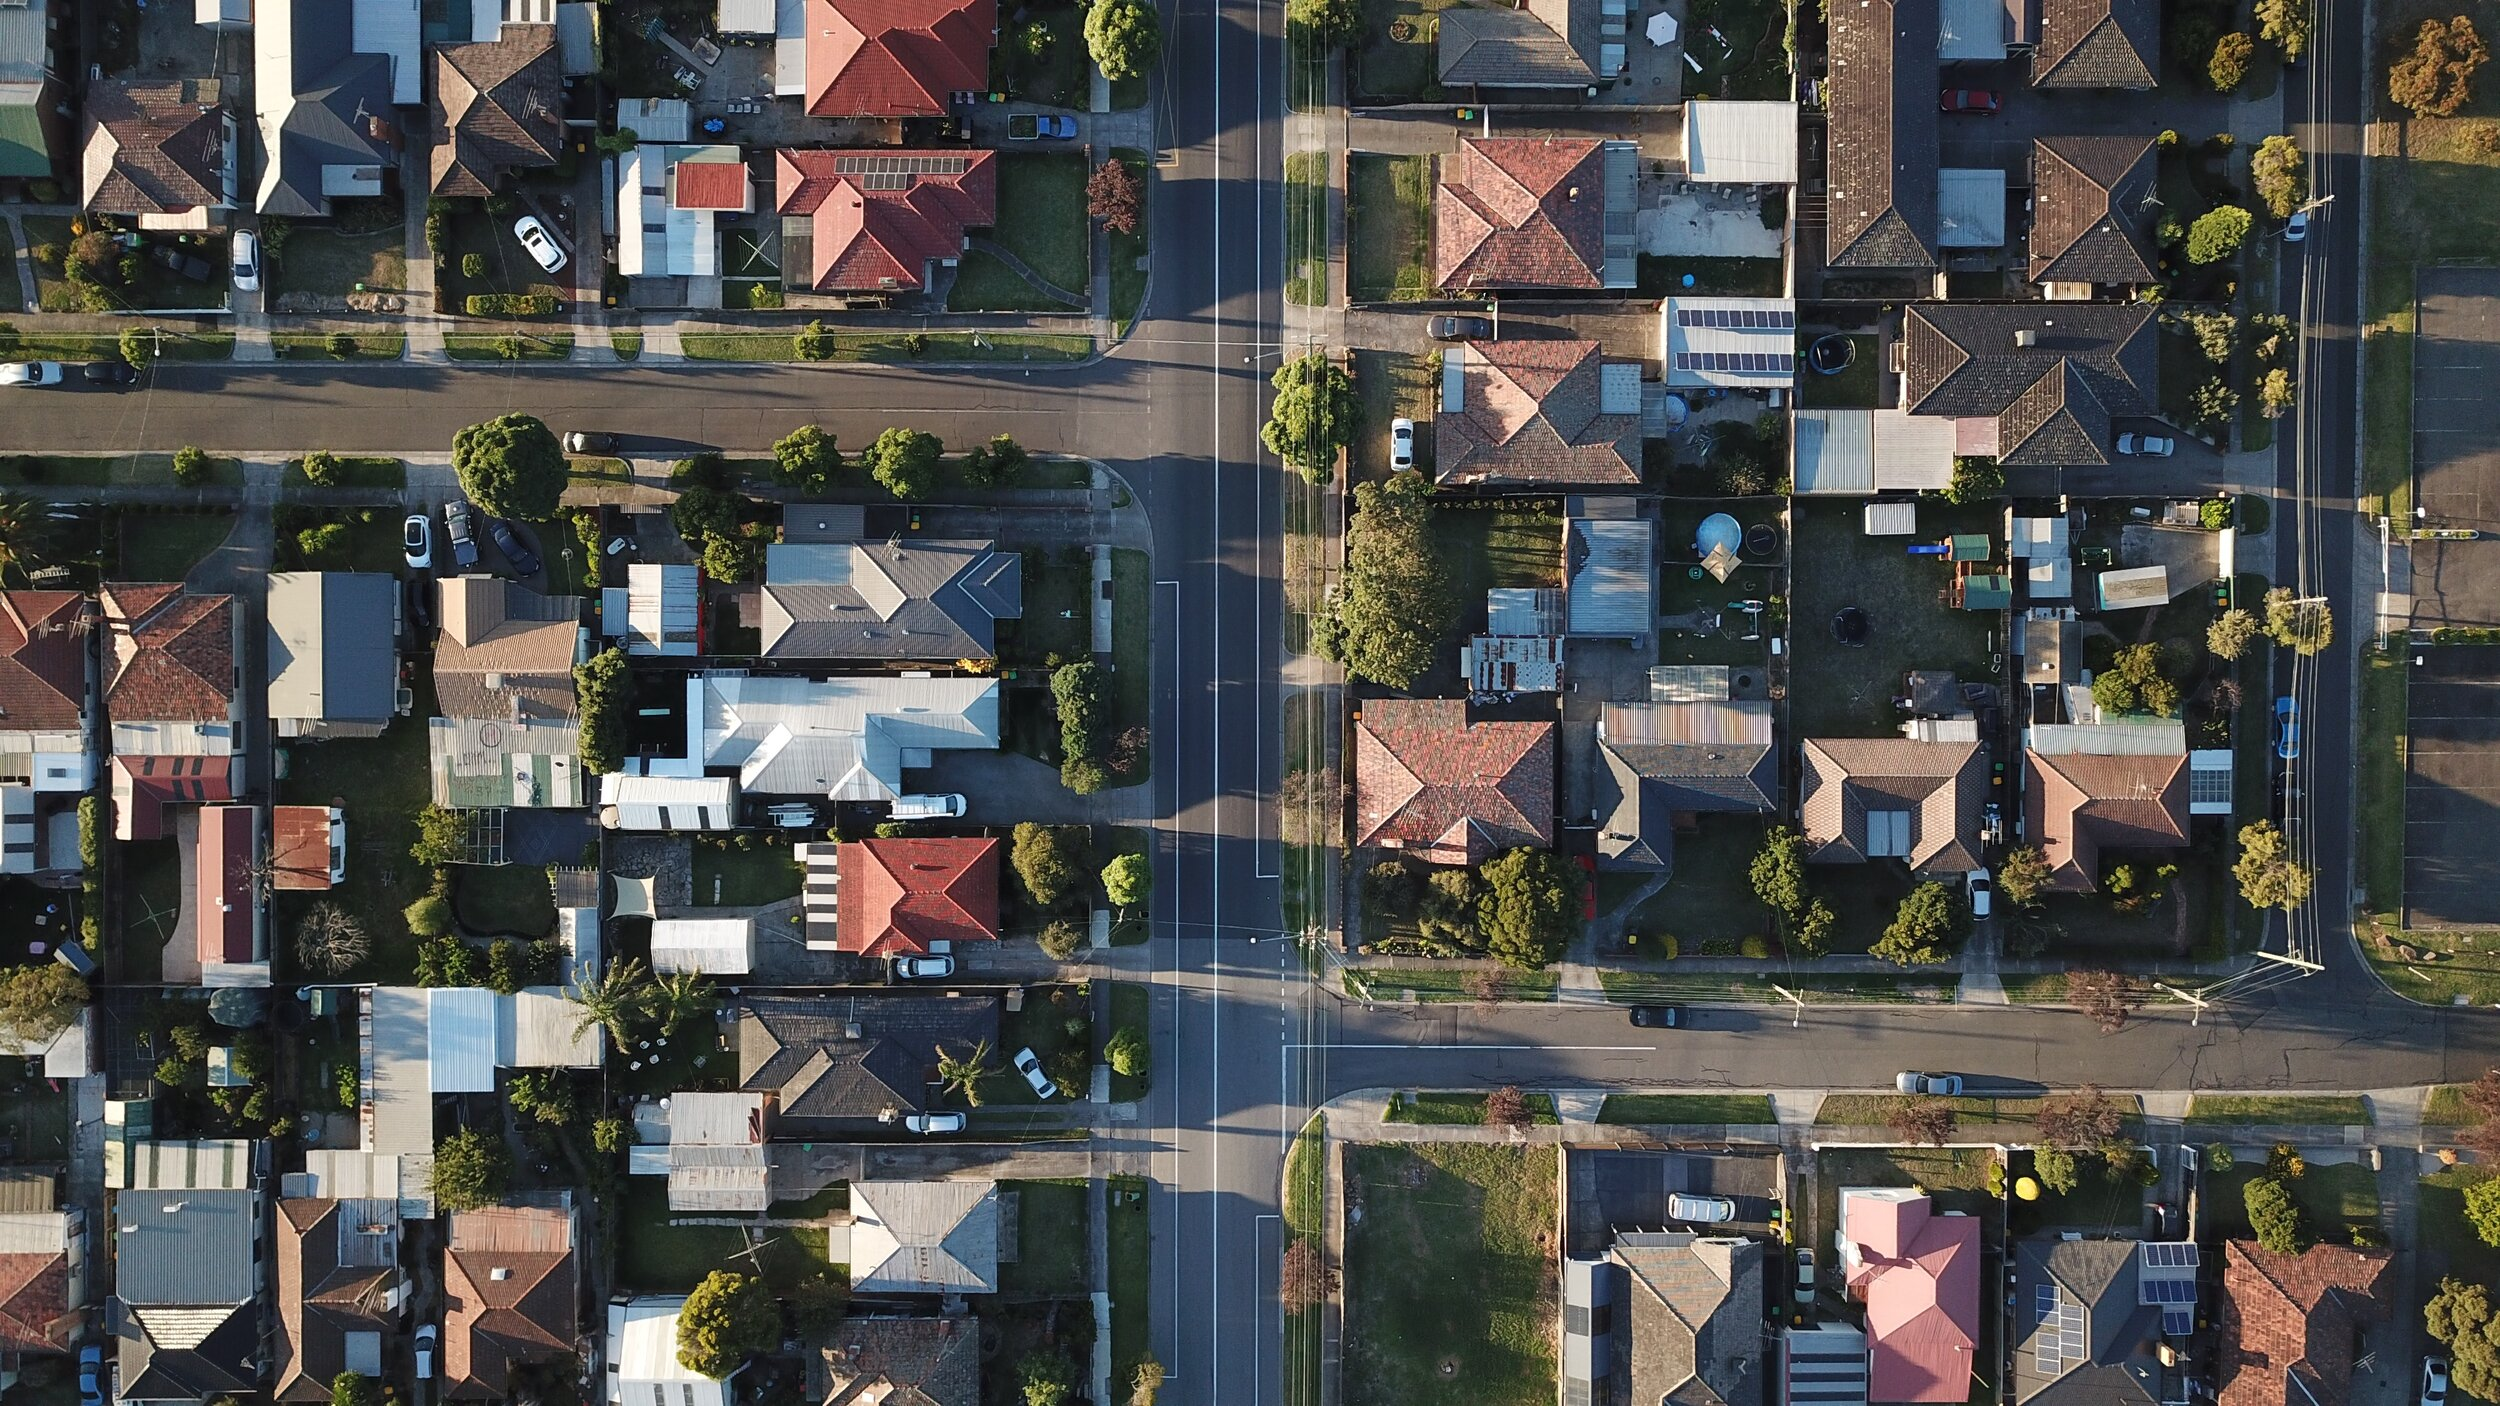 Aerial view of houses in suburb